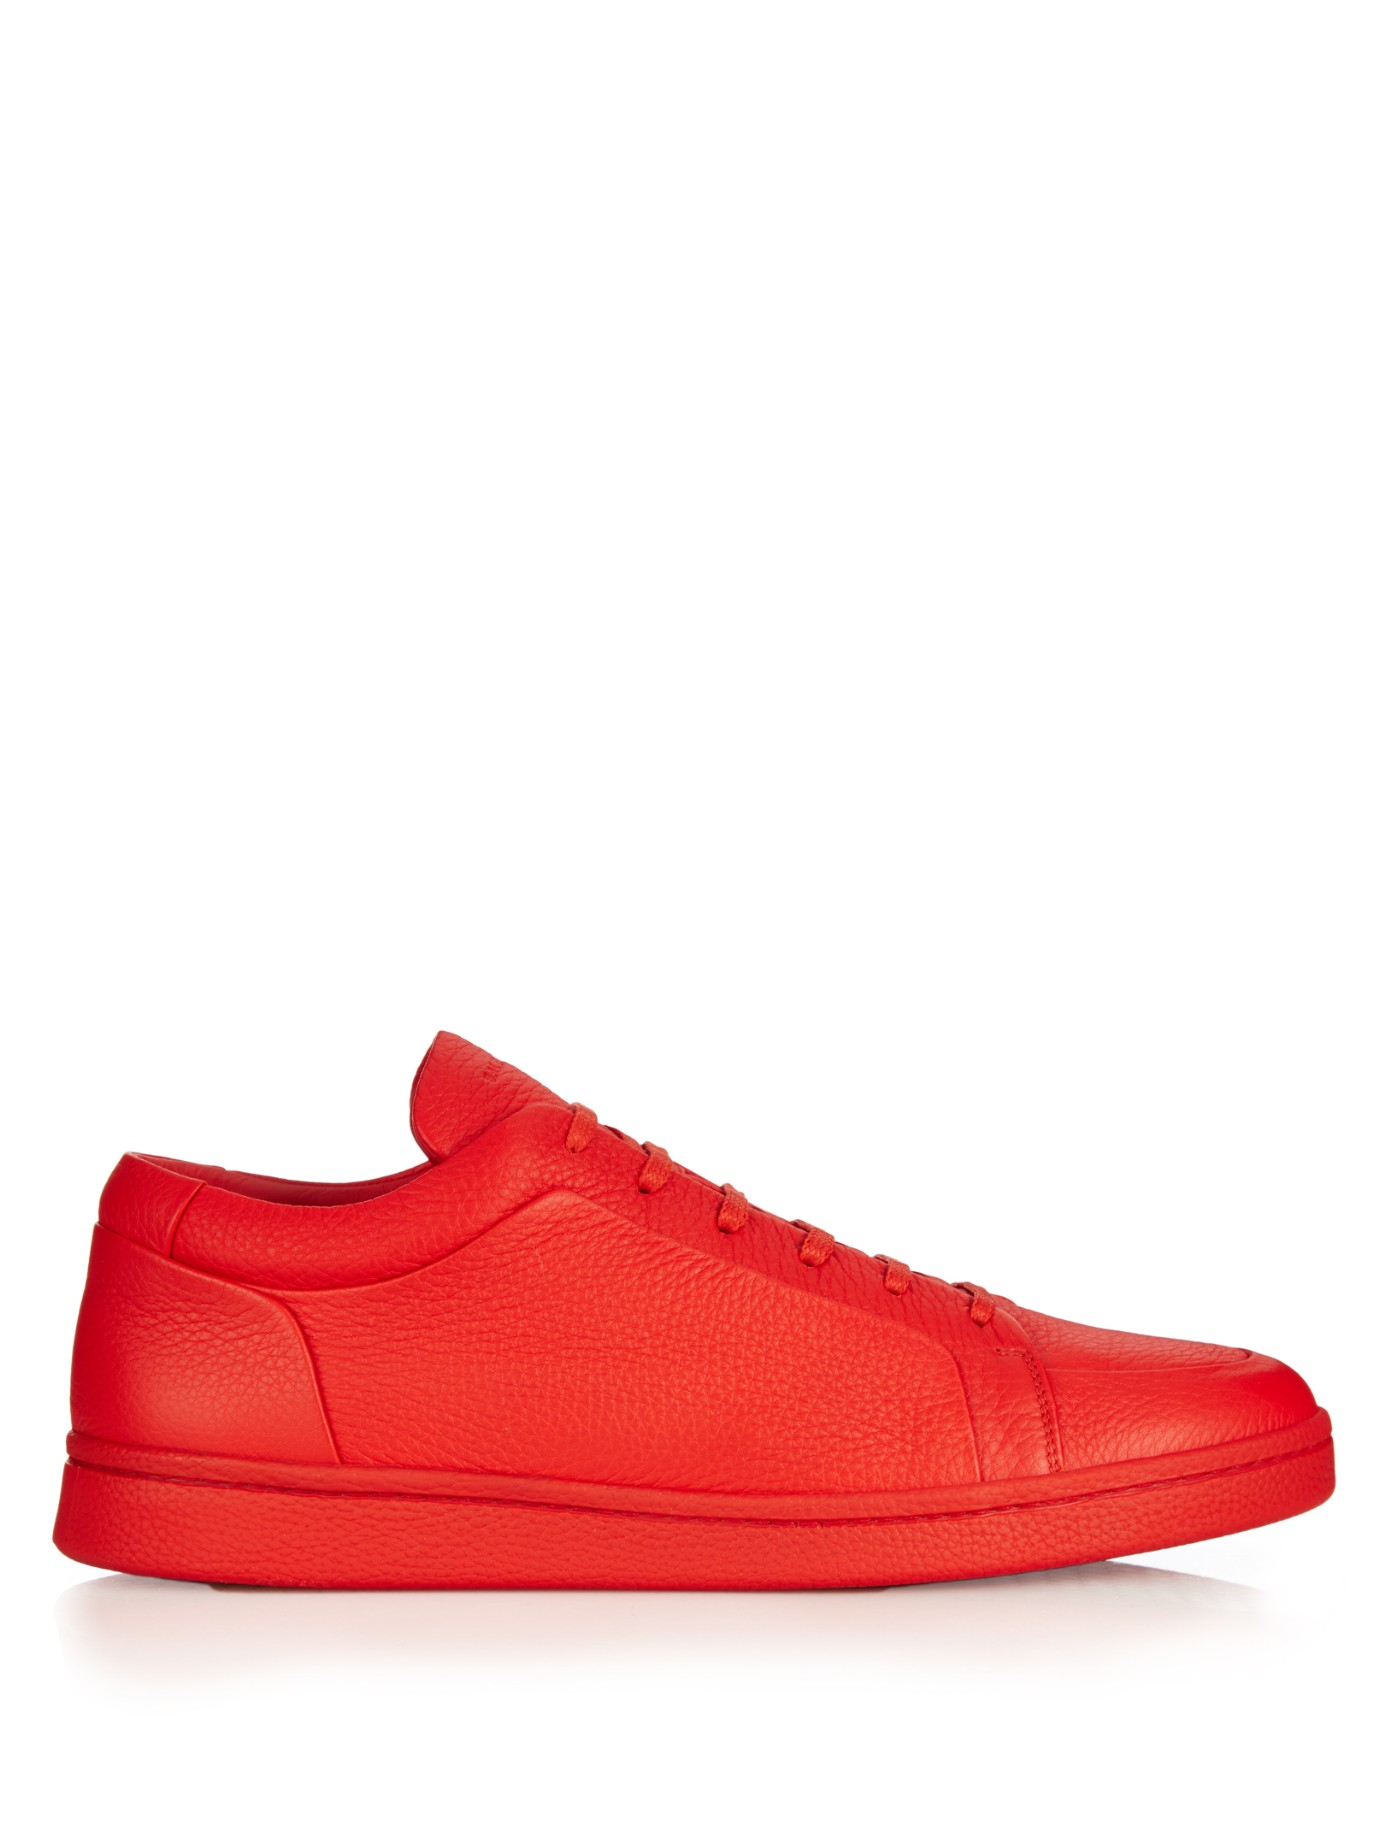 Balenciaga Urban Low Top Leather Trainers In Red For Men